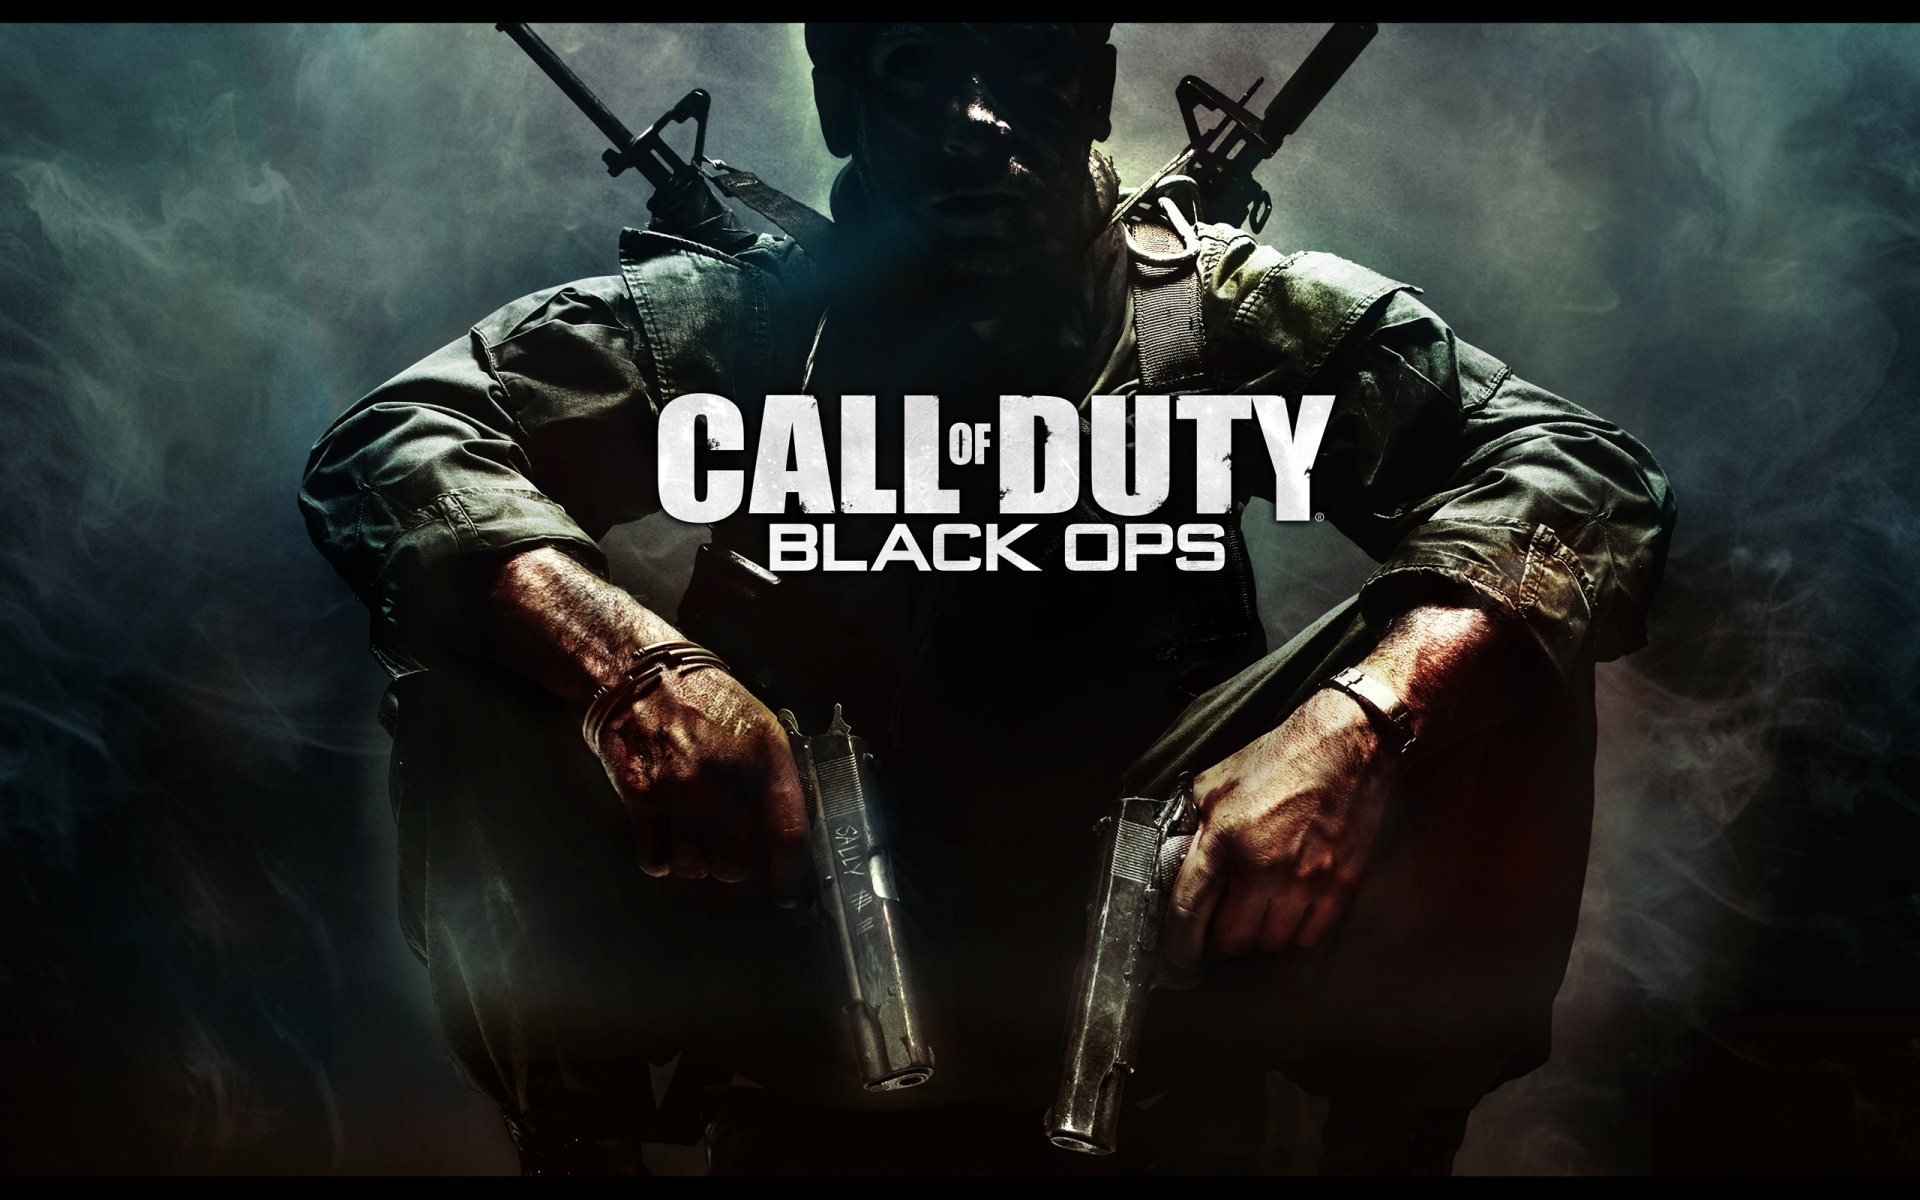 21 Call Of Duty Black Ops HD Wallpapers